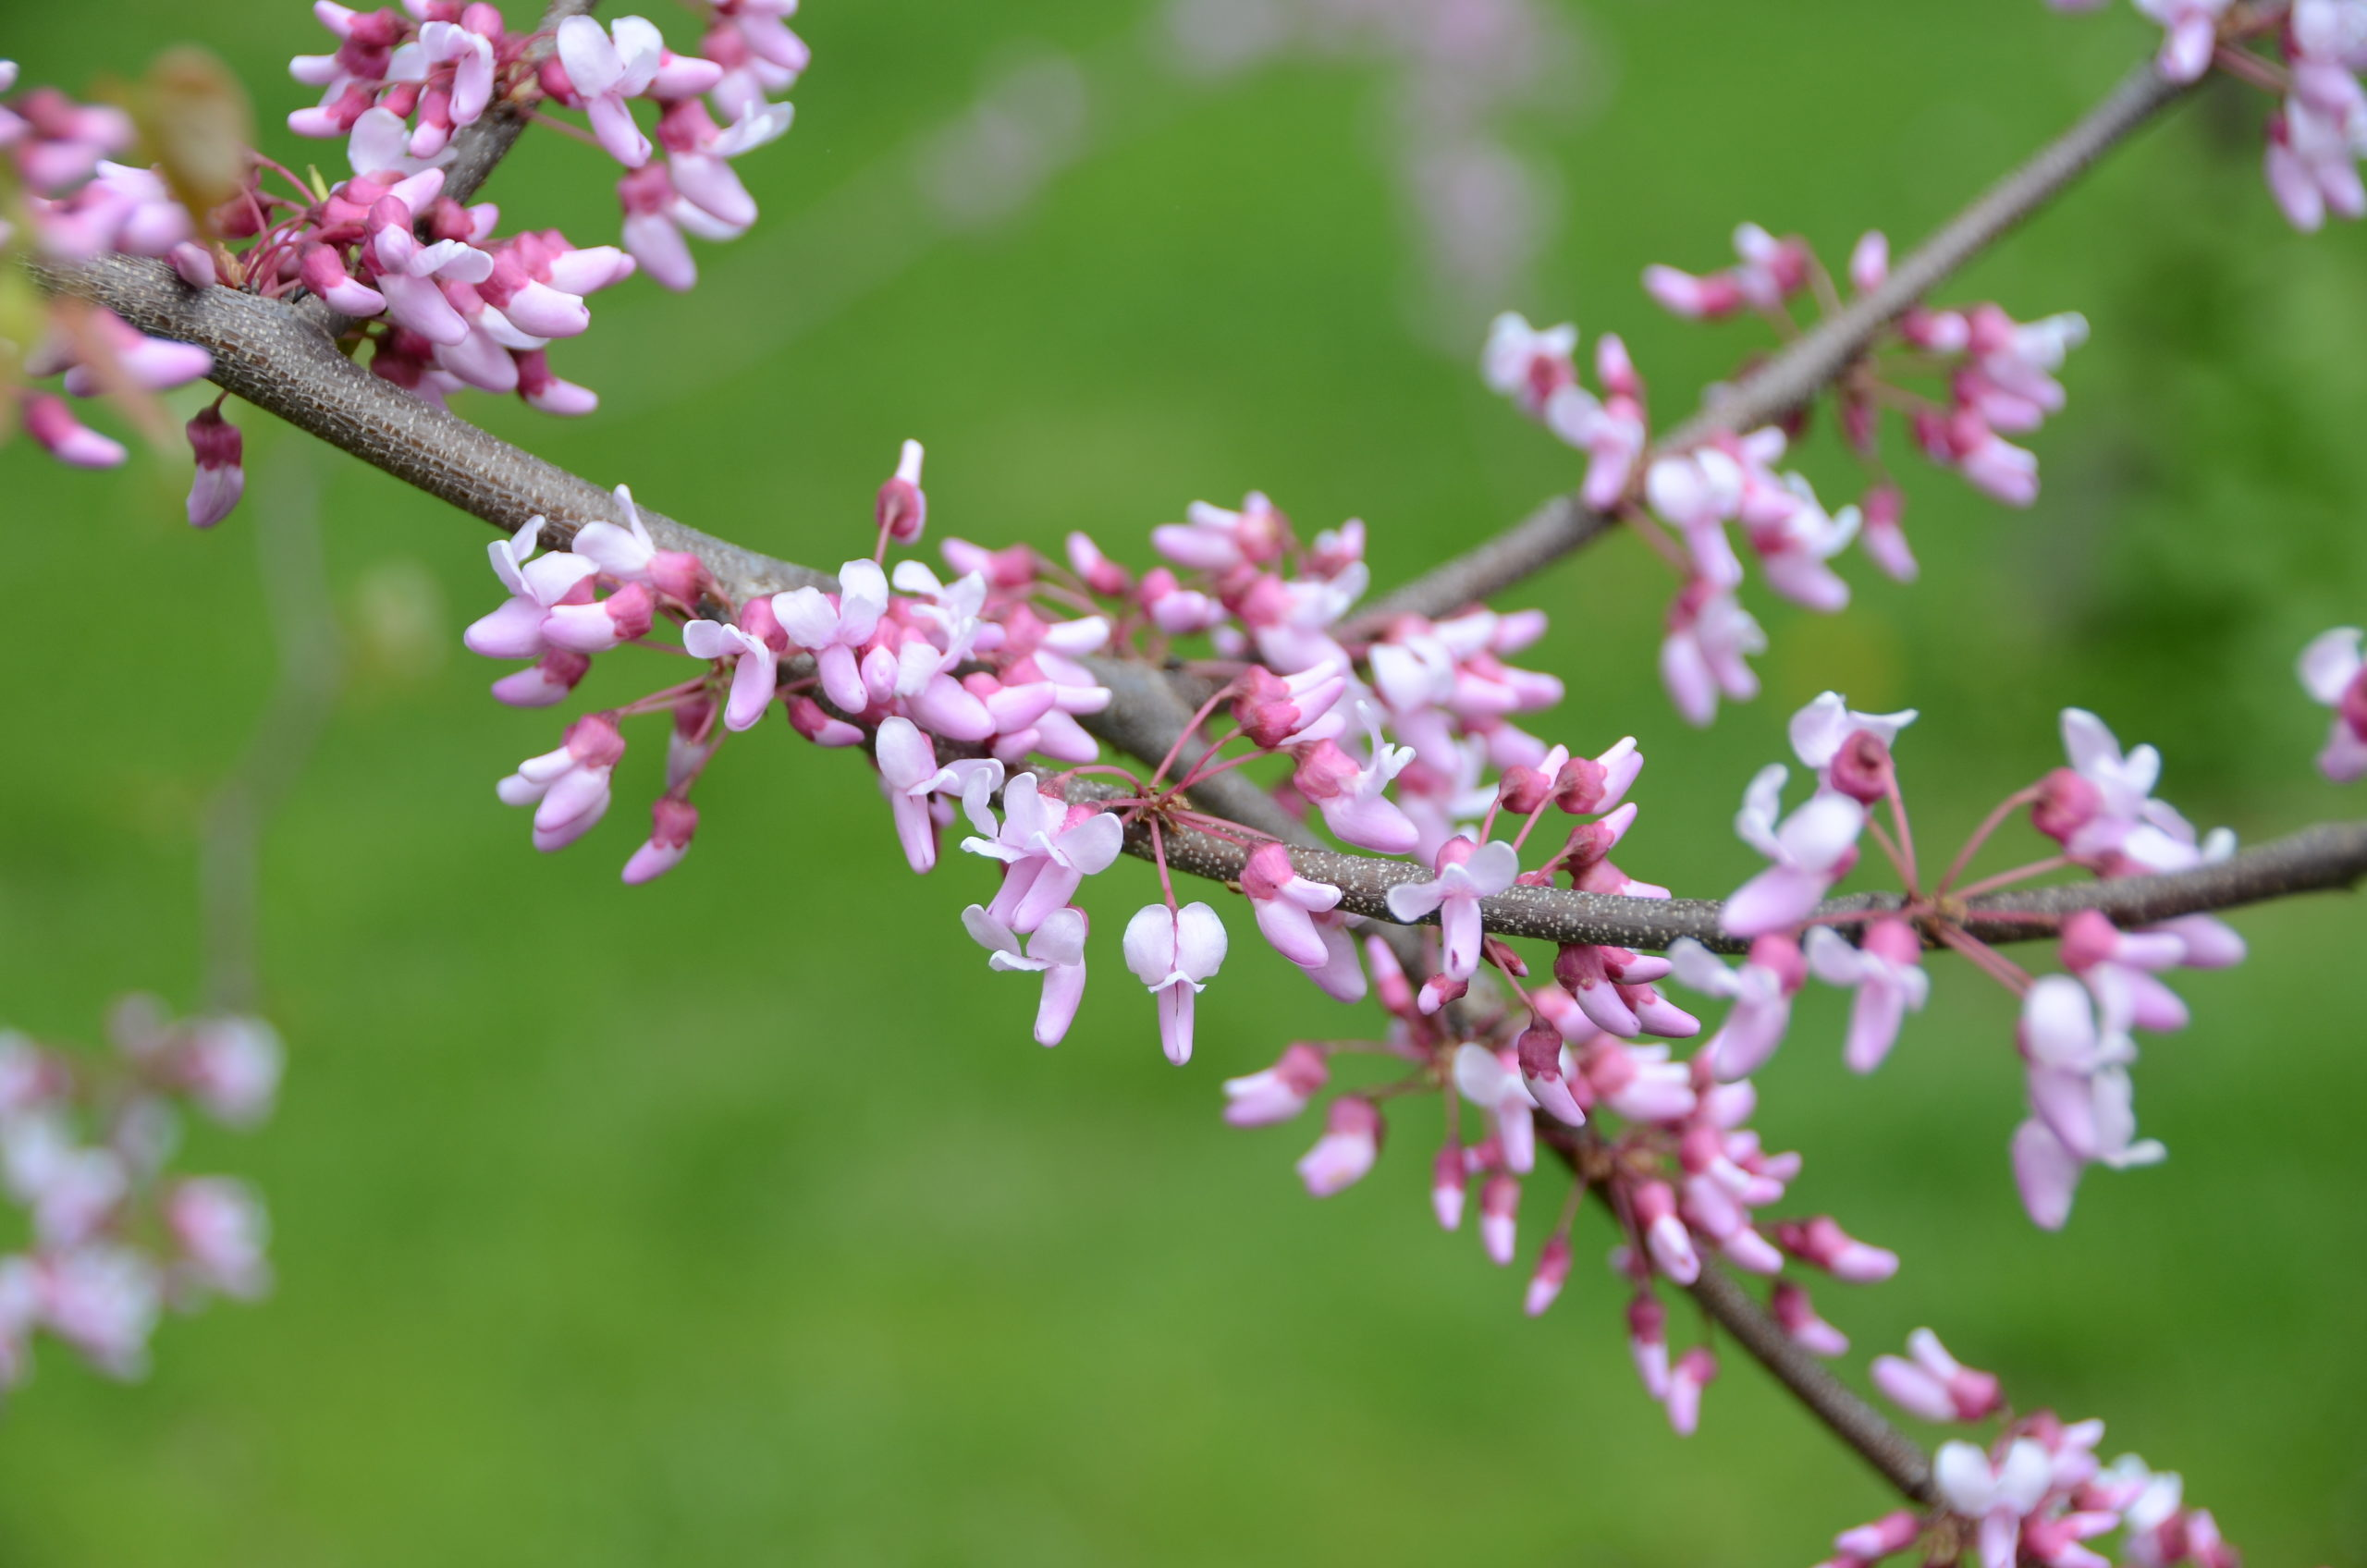 Redbuds (Cercis canadensis) as well as flowering almonds (Prunus triloba) can provide long branch cuttings with colors ranging from pinks in the redbuds to darker and more fragrant flowers in the flowering almonds.